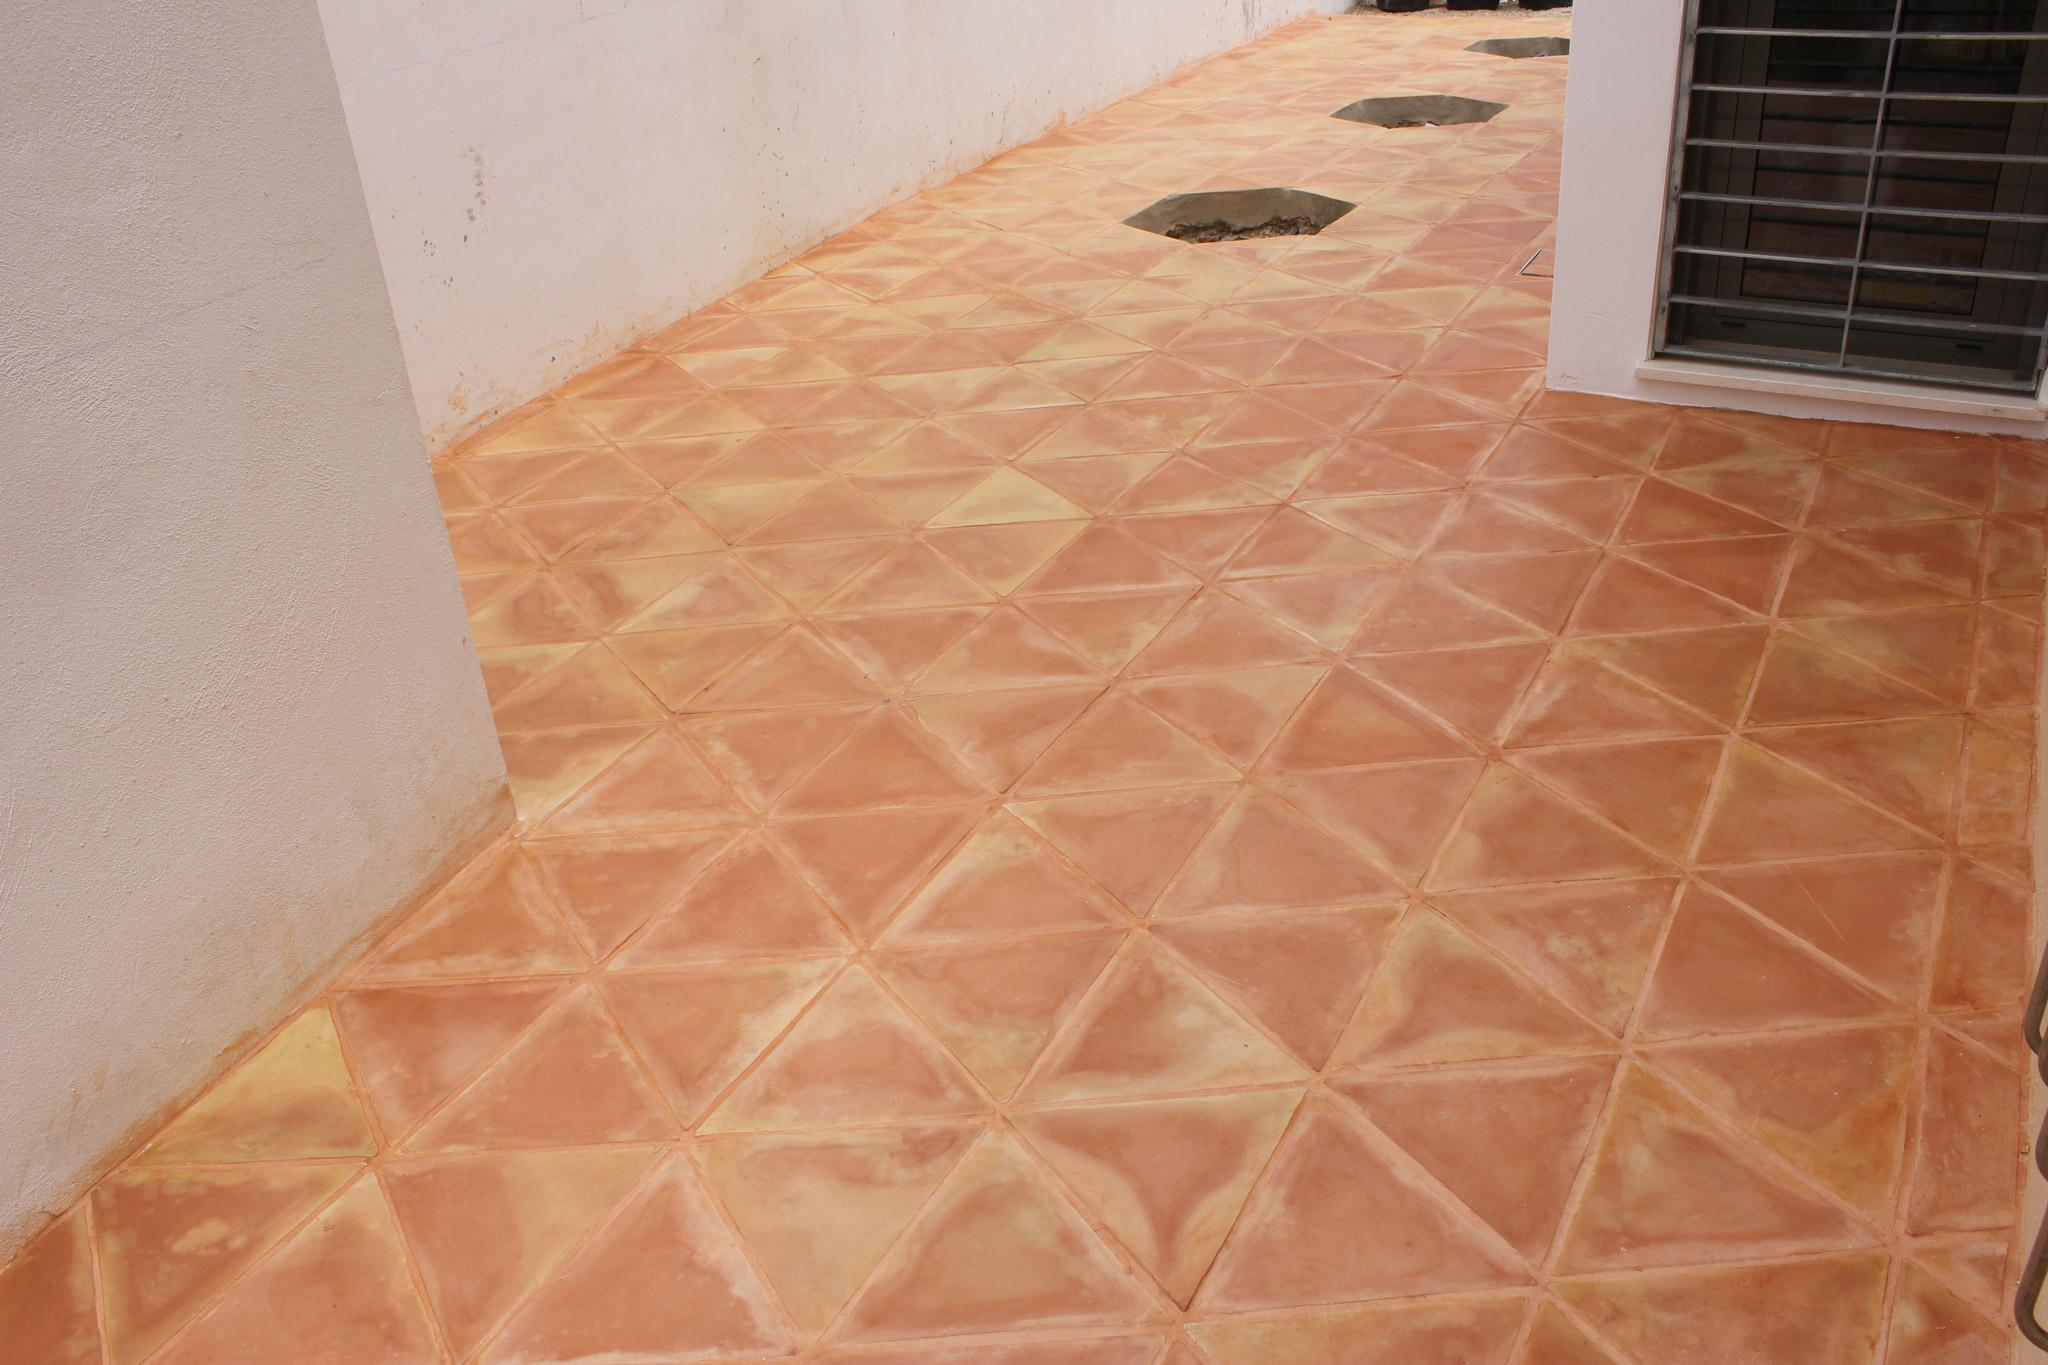 10 Pak Clay Bathroom Floor Tiles Design and Price in Pakistan Images.